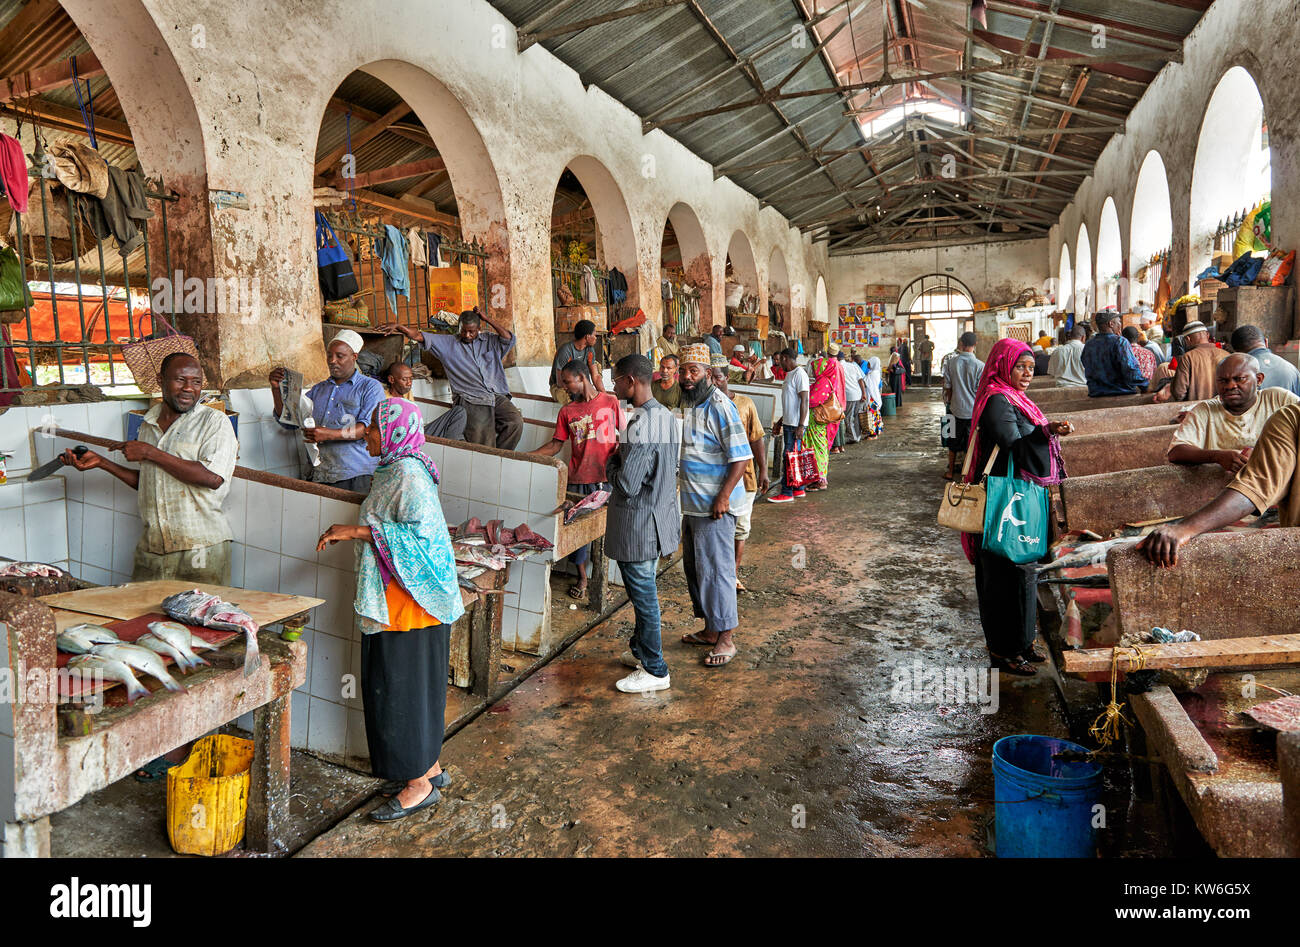 fish department on local food market in Stone Town,UNESCO World Heritage Site, Zanzibar, Tanzania, Africa - Stock Image